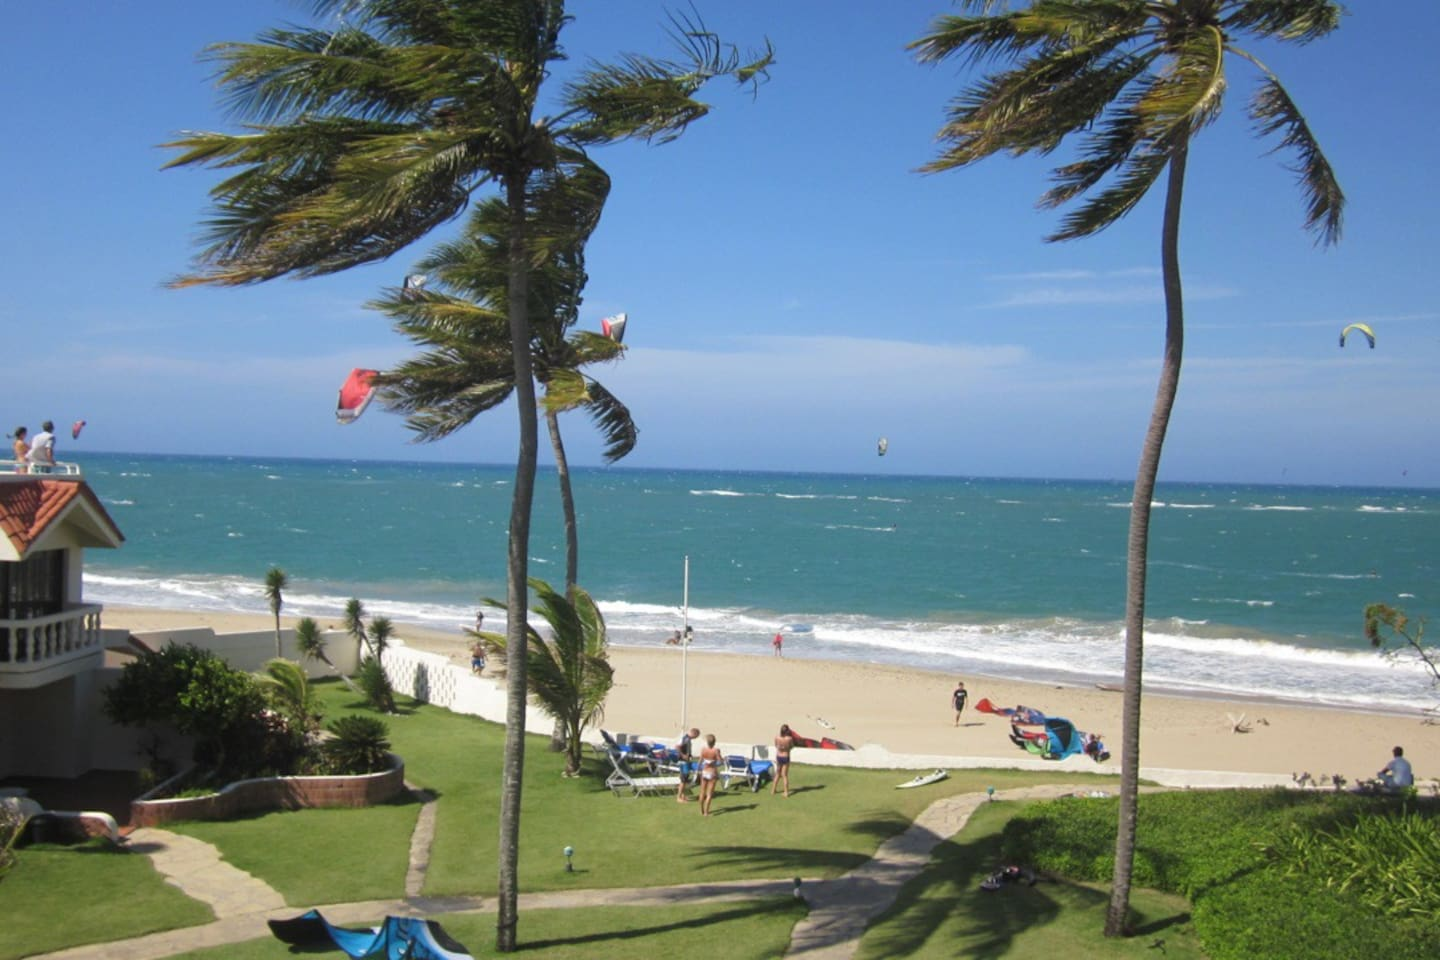 Ultimate kite and windsurf conditions and you have direct access...